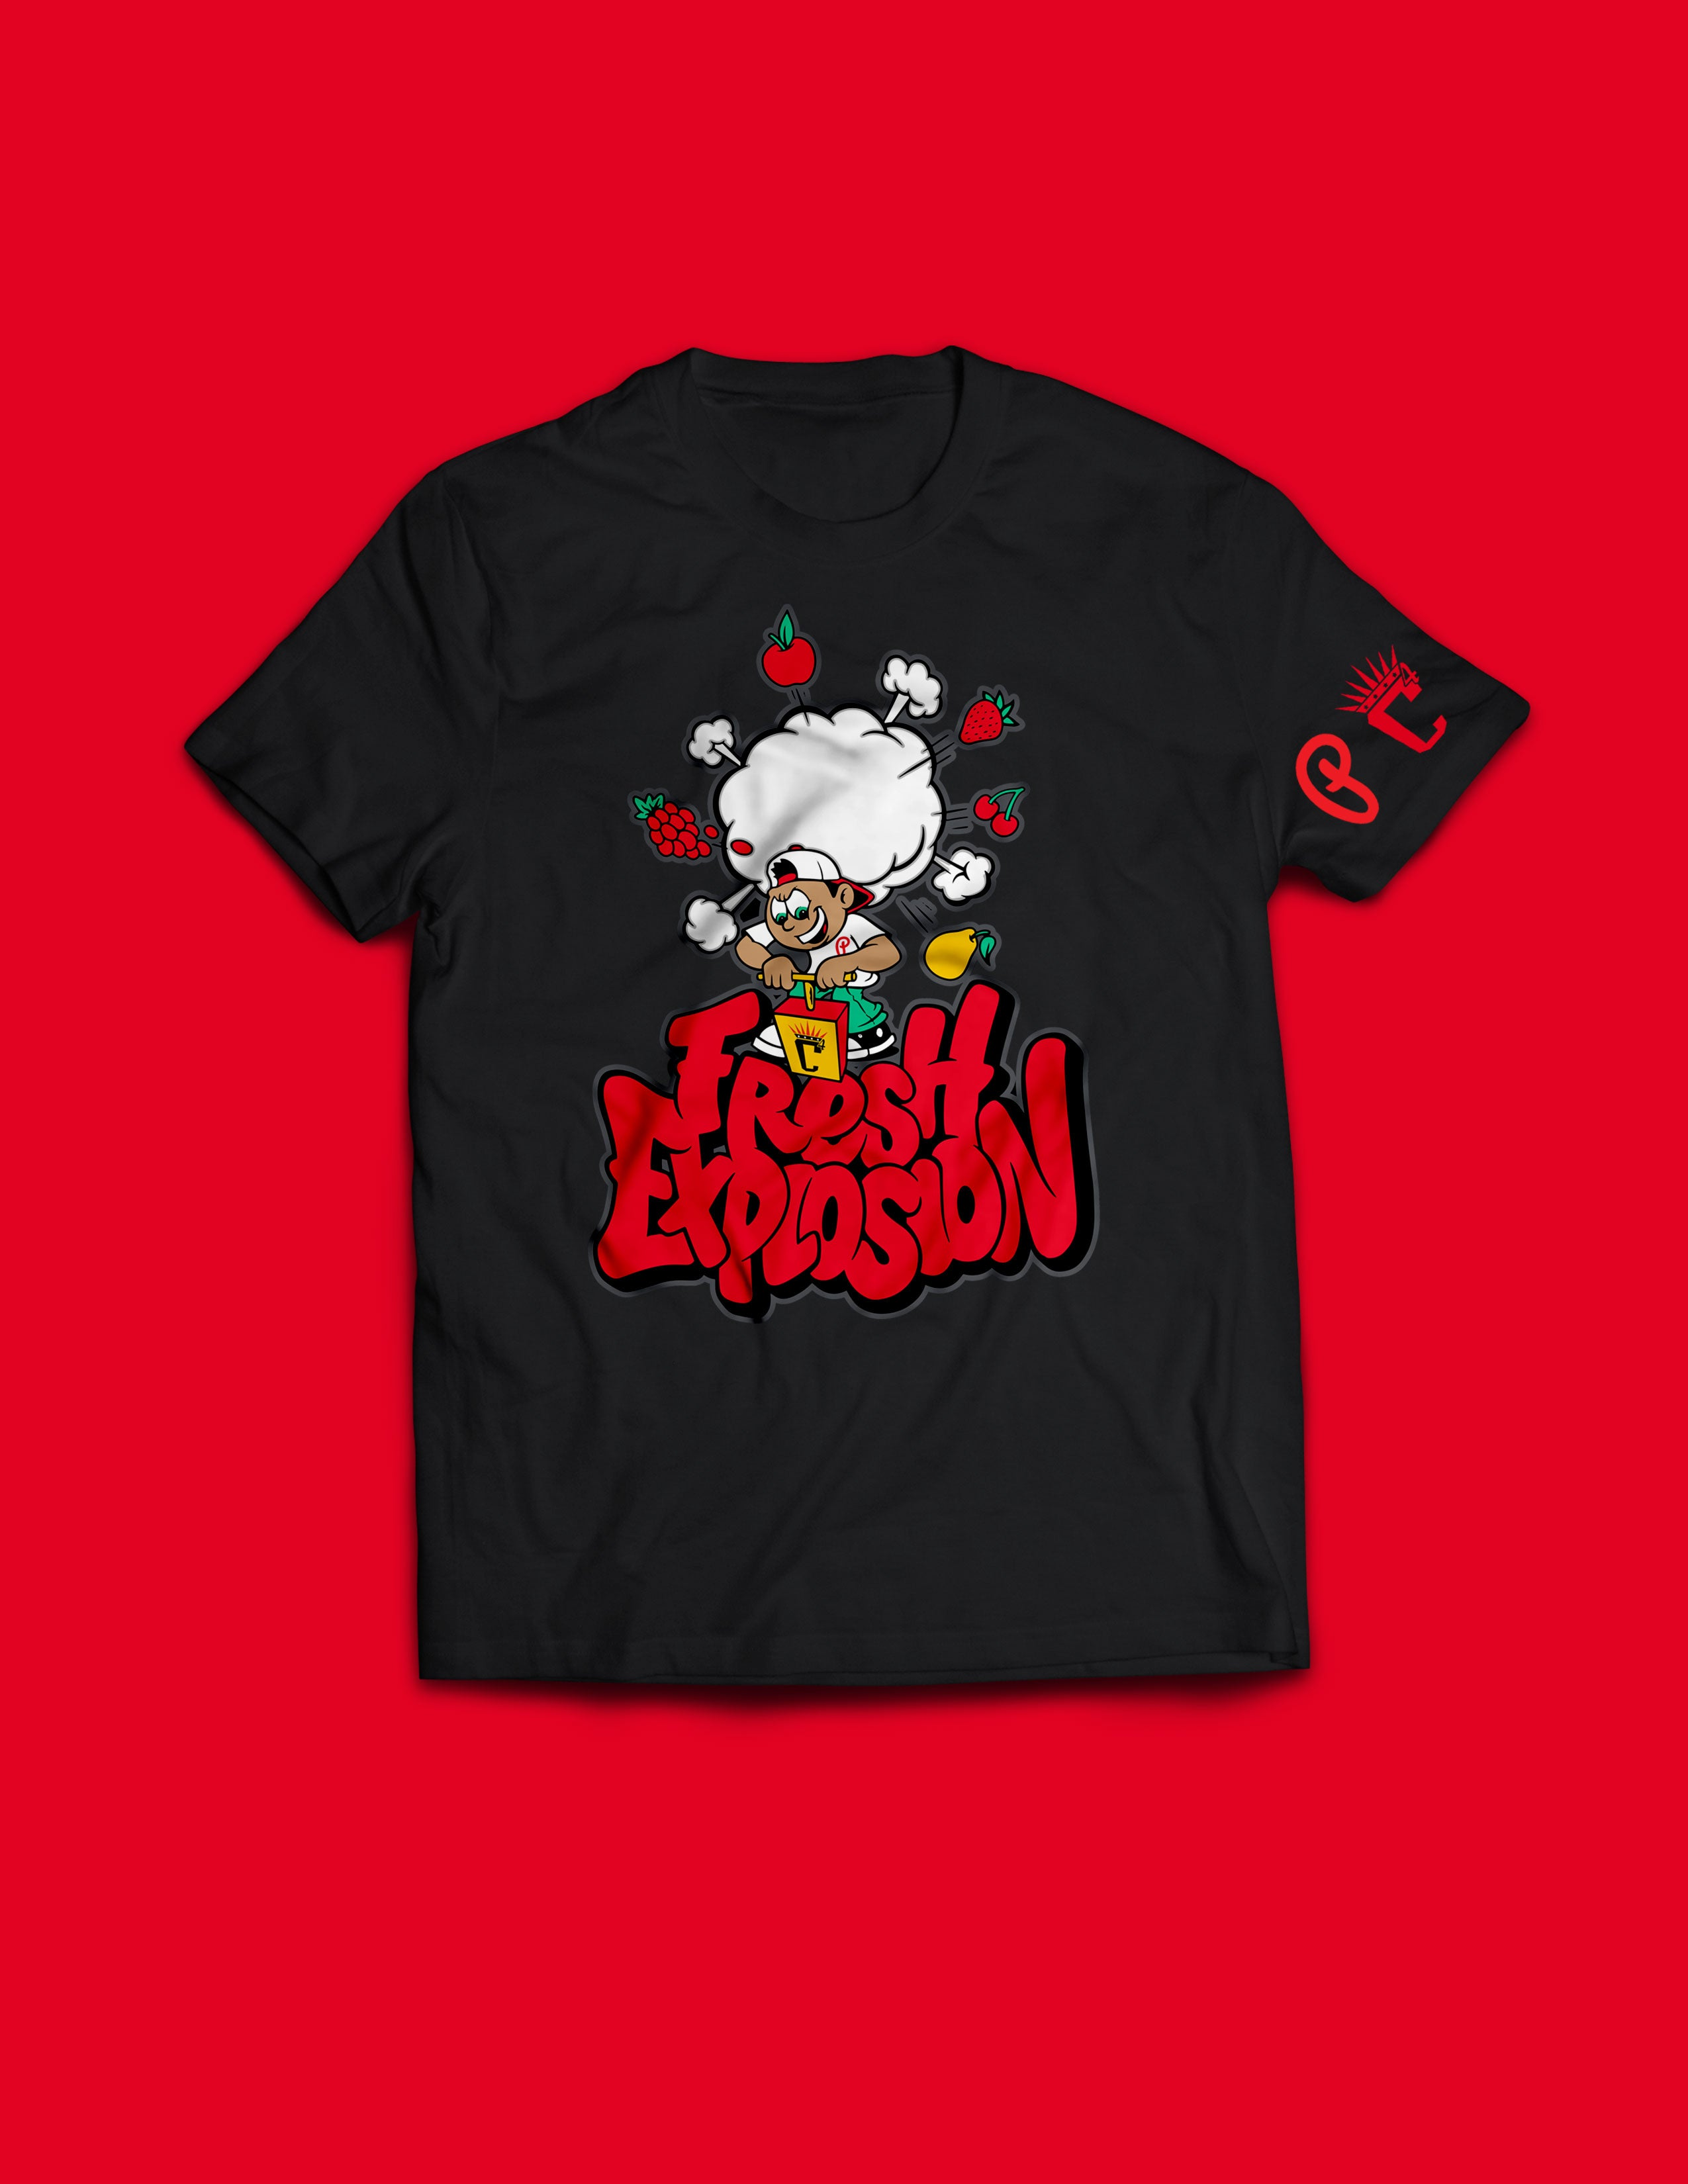 "Kids - Produce Section Clothing x C4 ""Fresh Explosion"" Tee - Black (PRE-ORDER)"